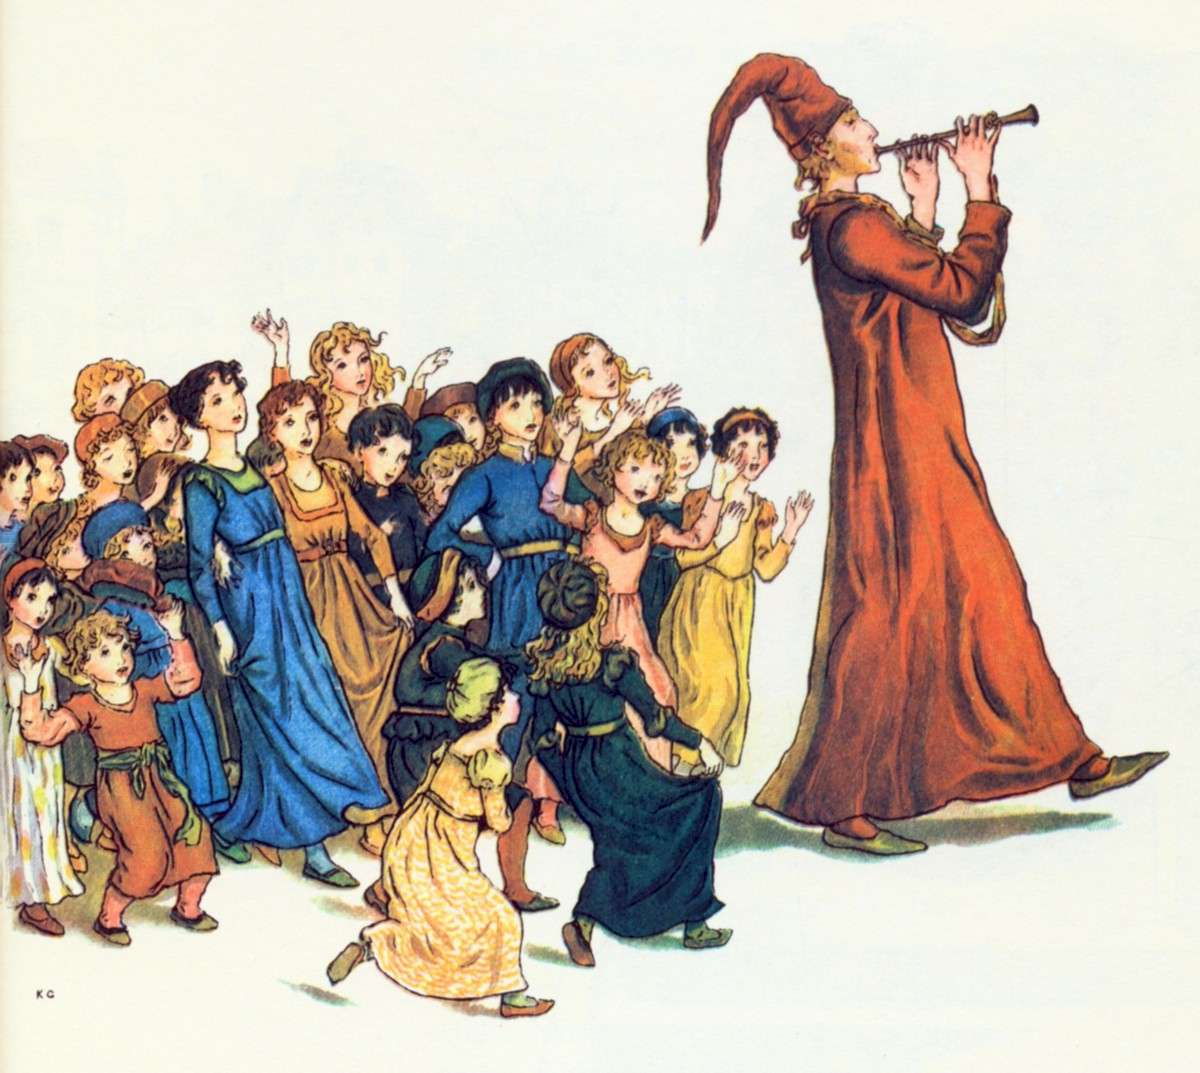 Pied_Piper_with_Children.jpg